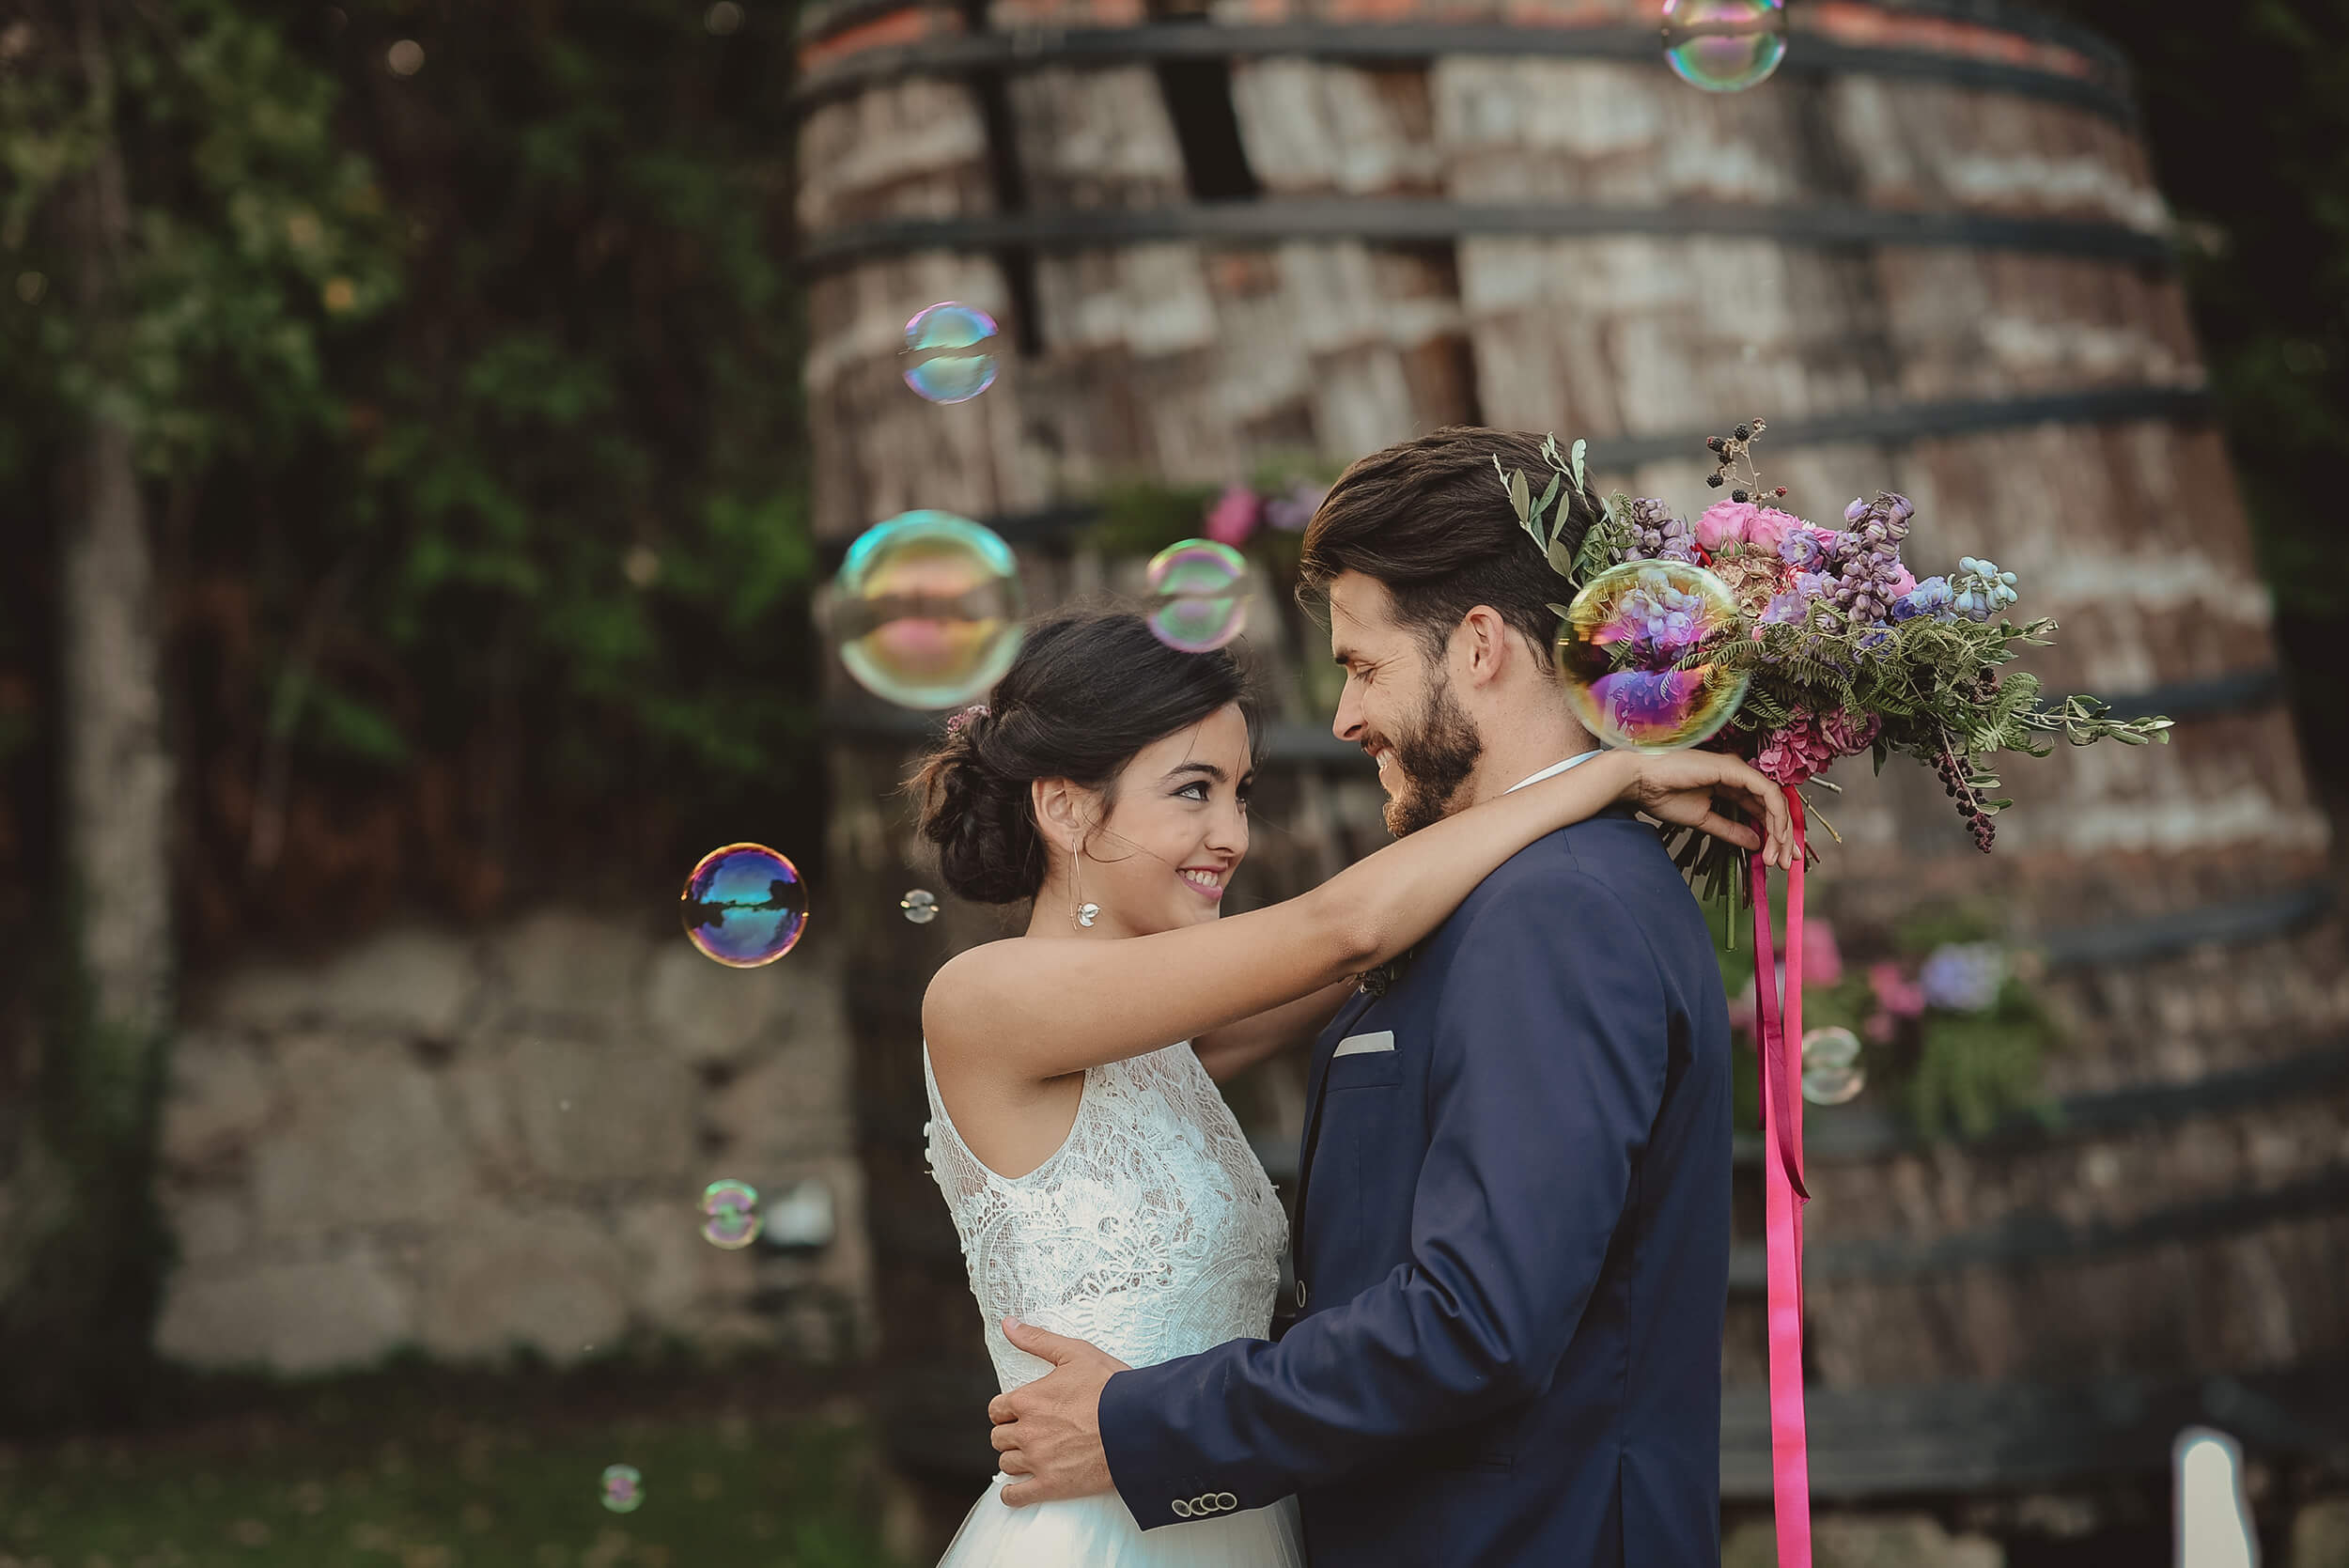 roma-organizacao-eventos-editorial-casamento-colorful-wedding-48